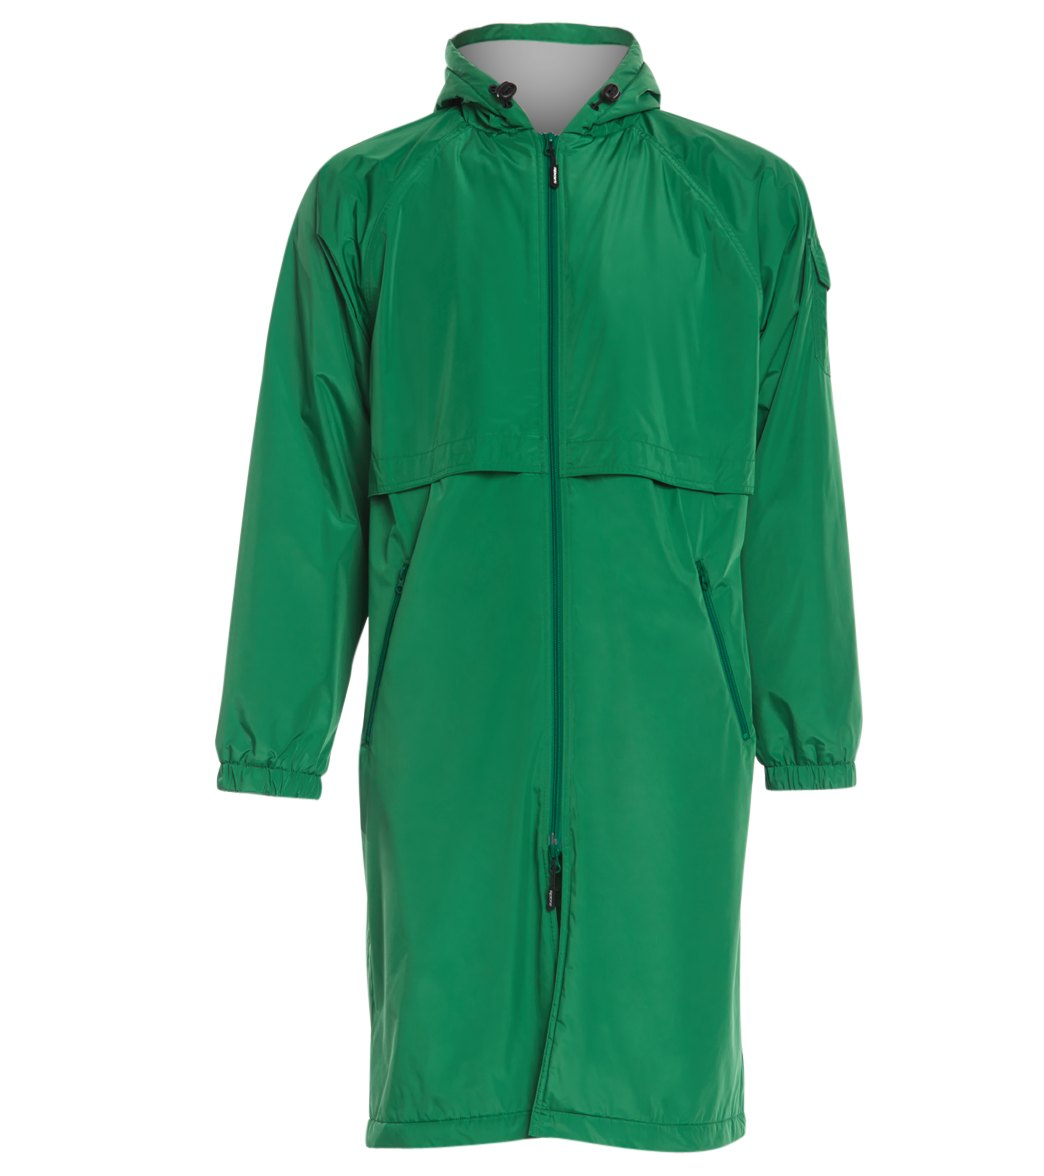 e456121a Sporti Comfort Fleece-Lined Swim Parka Youth at SwimOutlet.com - Free  Shipping